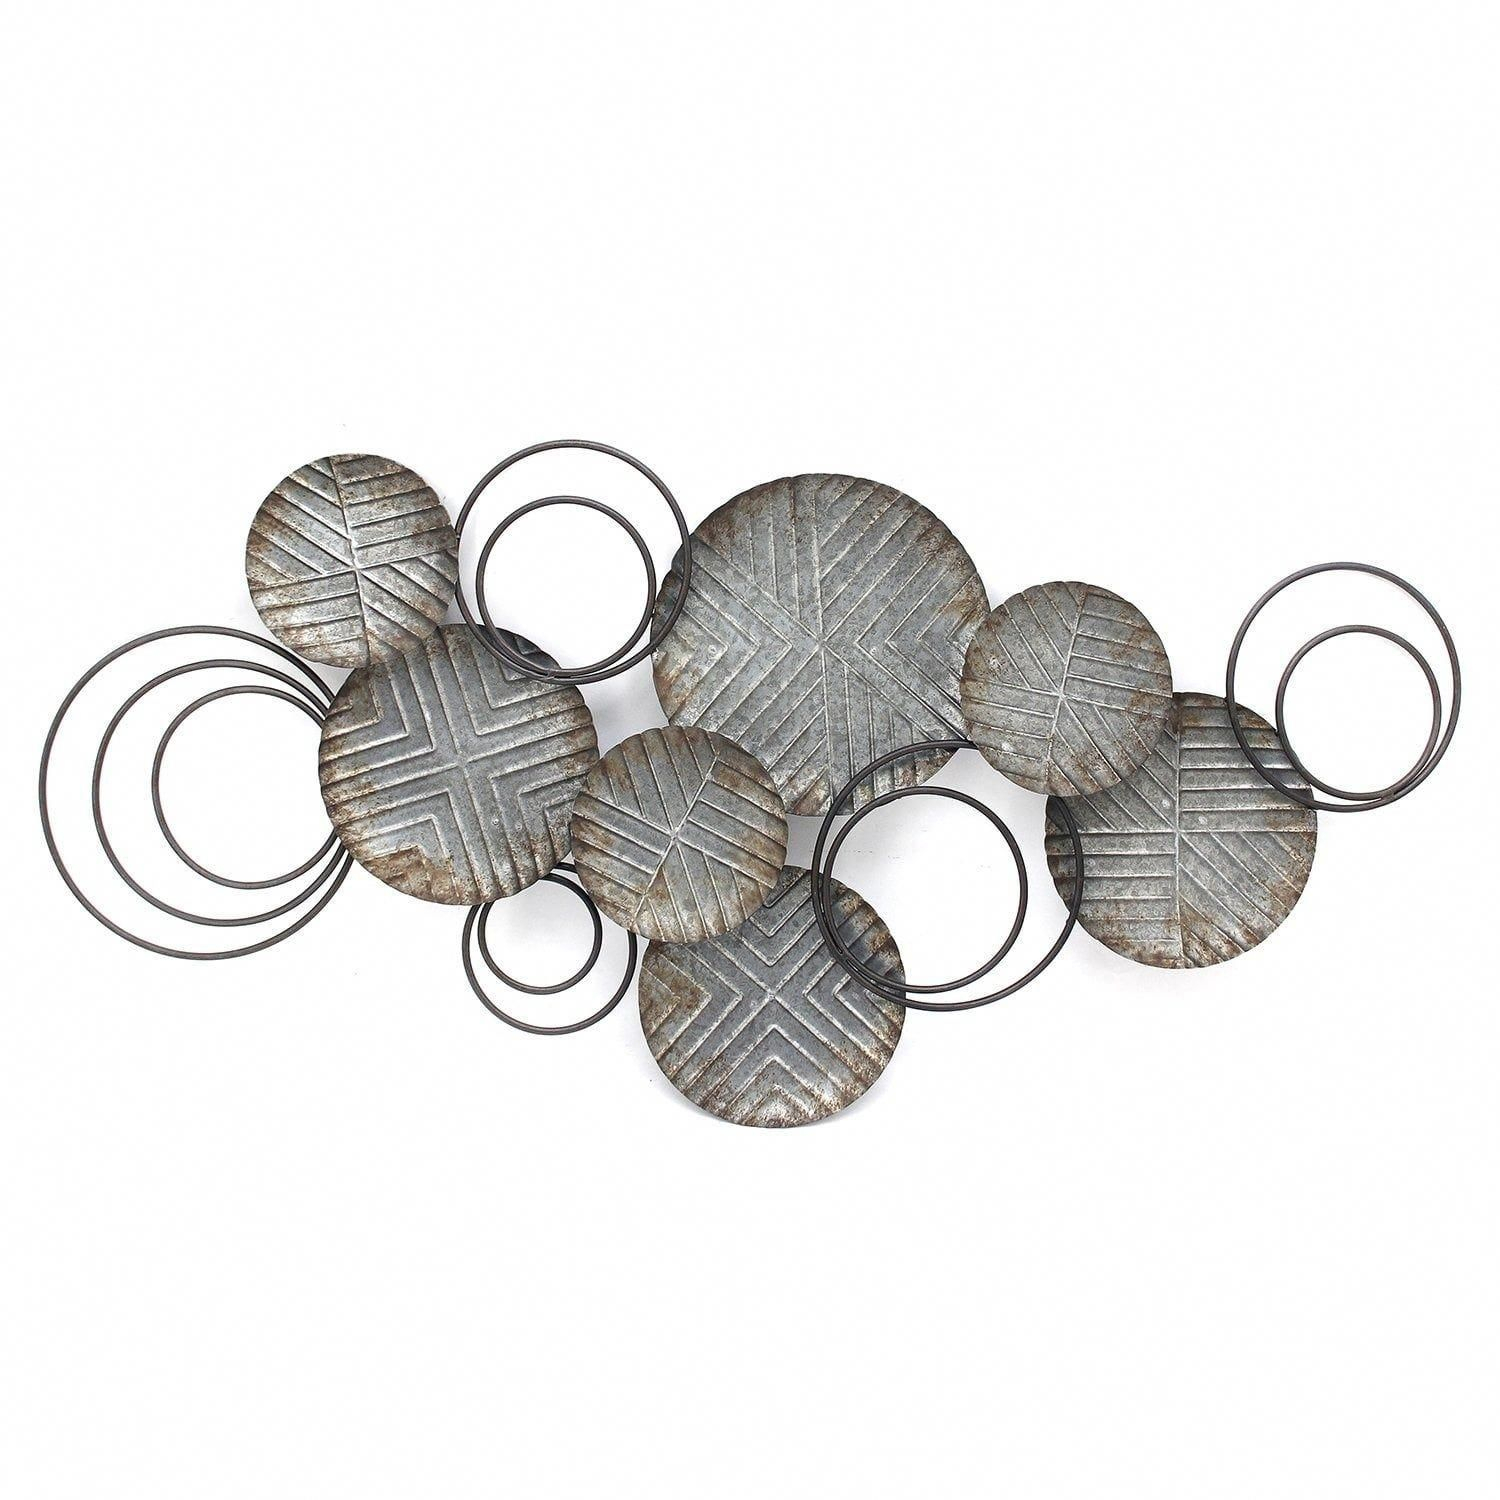 Stratton Home Decor Galvanized Plates Wall Decor, Silver pertaining to Scattered Metal Italian Plates Wall Decor (Image 20 of 30)